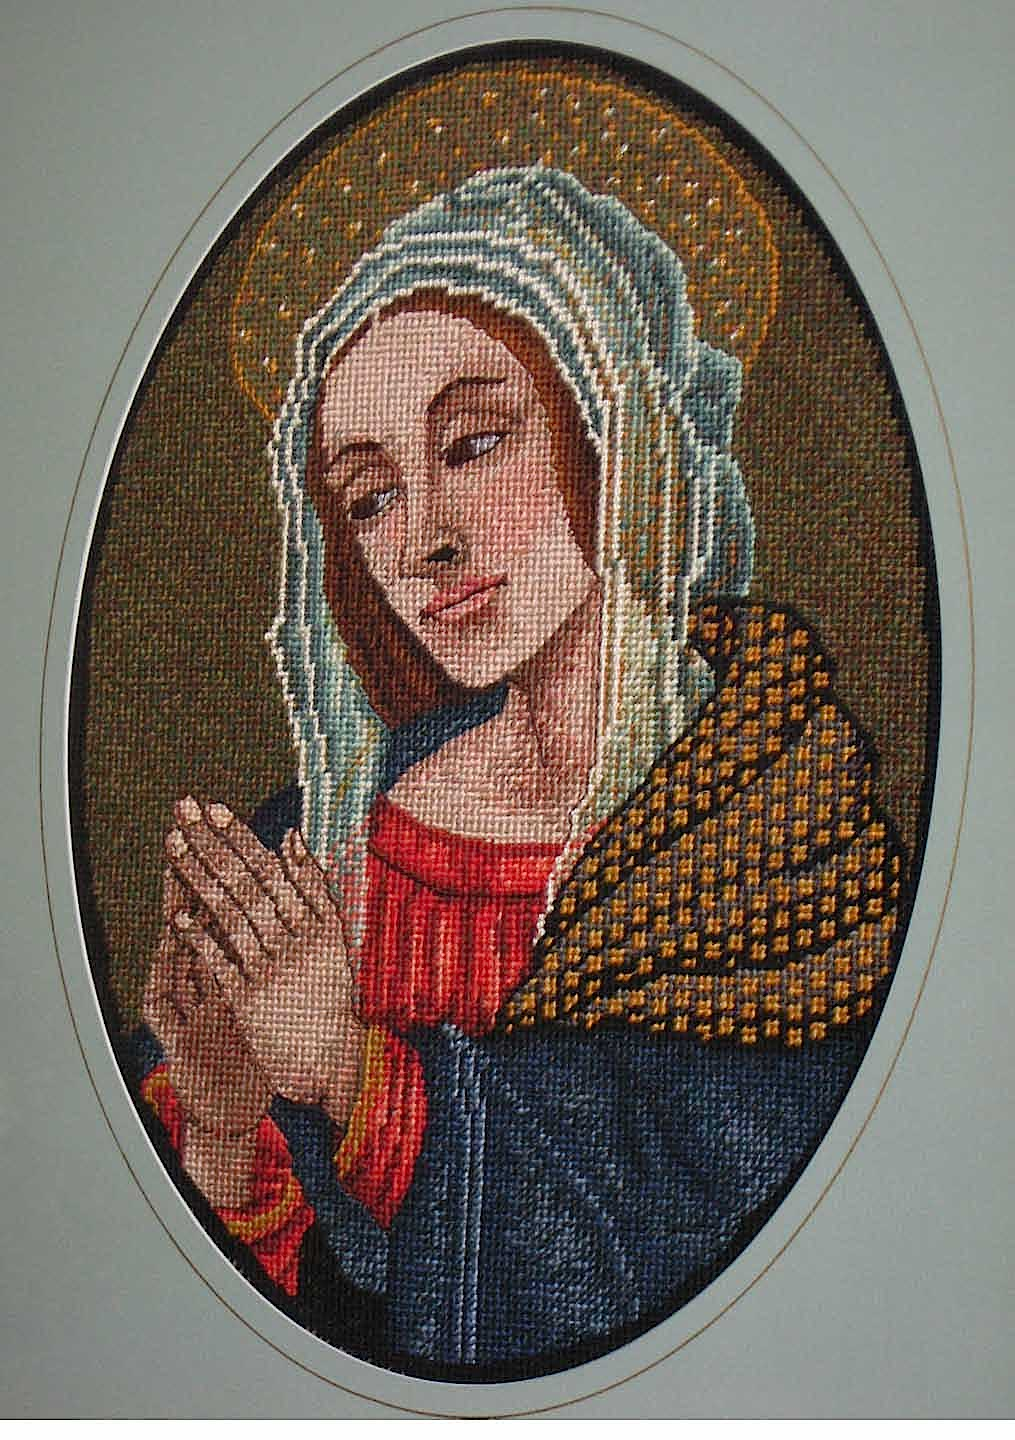 Renaissance Virgin Mary